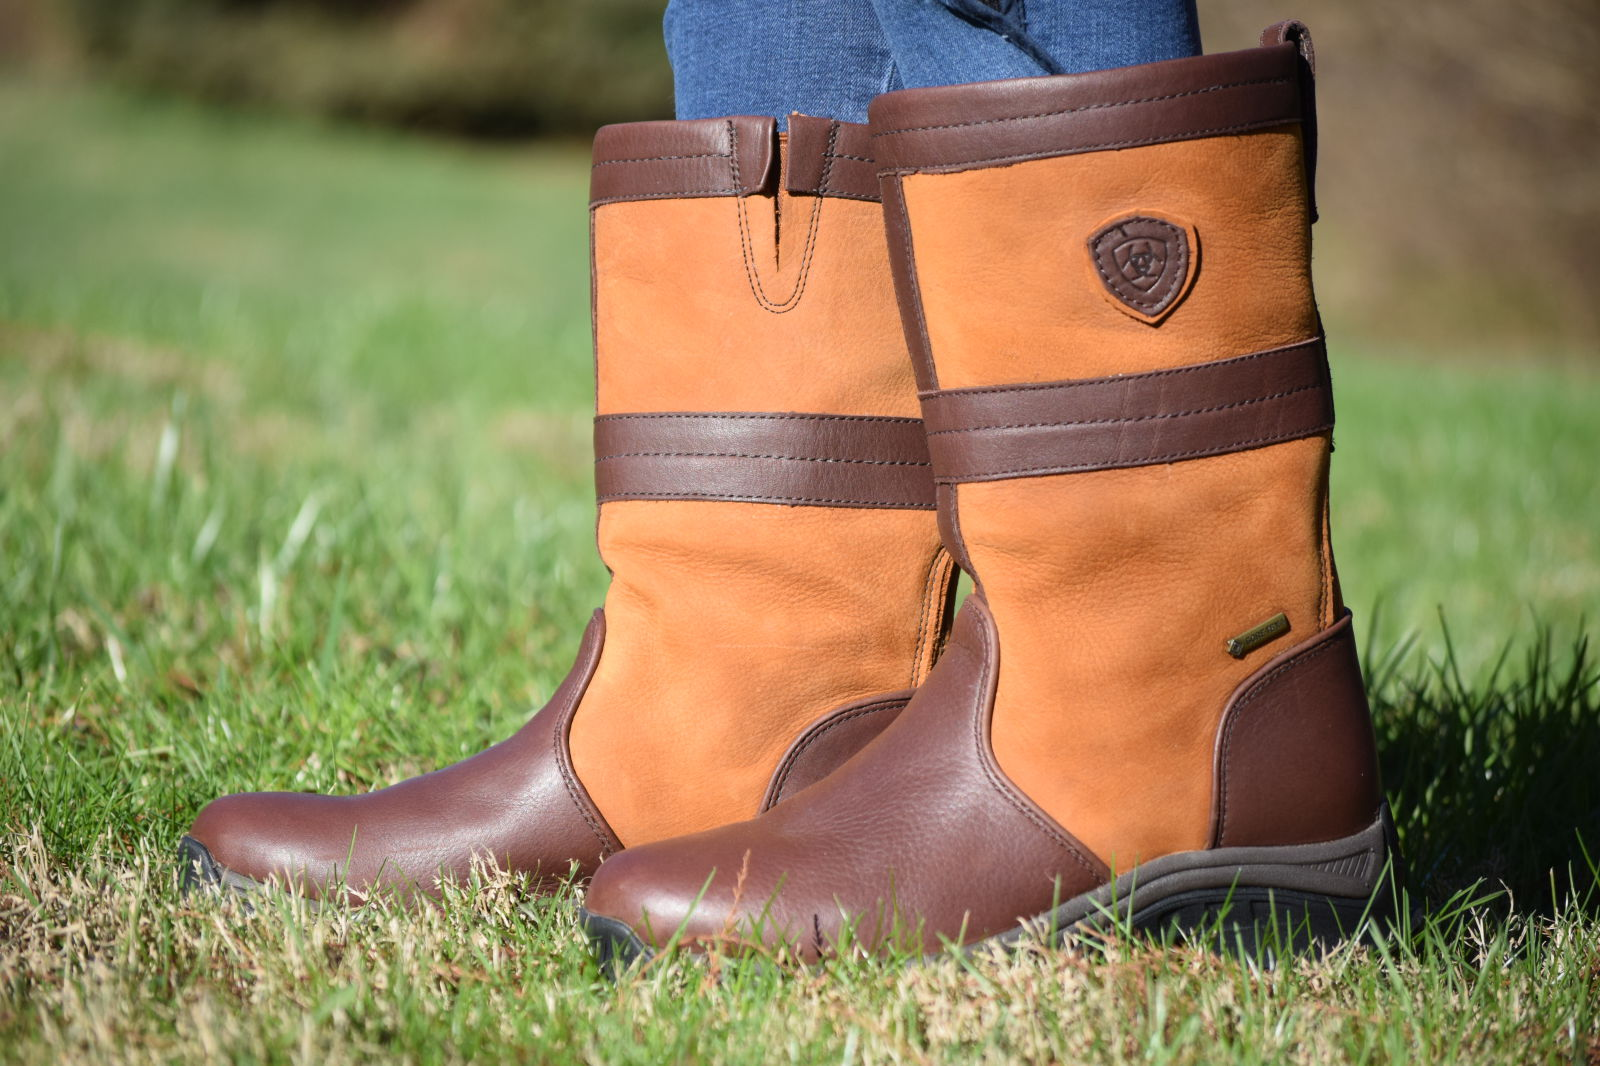 8714fa83d6f027 ... which is a tall boot similar to the Bryn that has a retail price of   399.95. Go Feet that are Dry